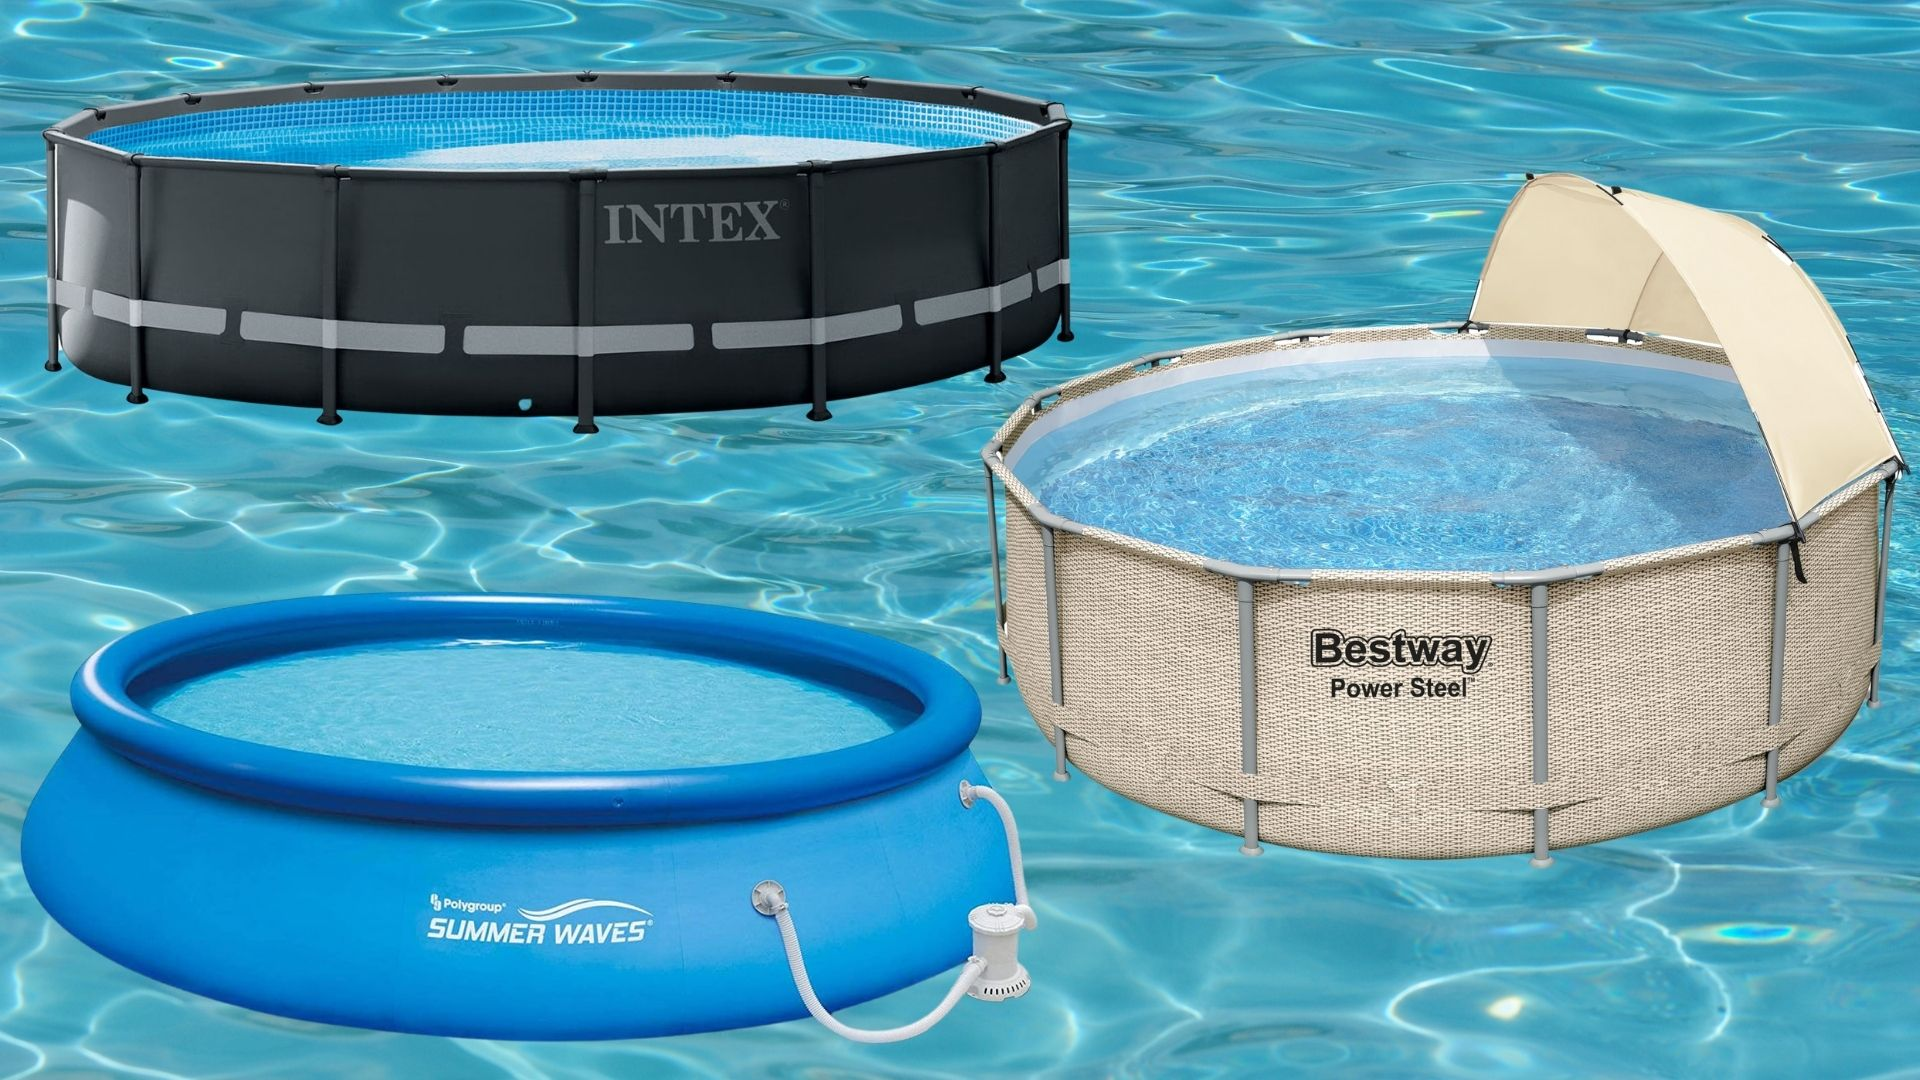 11 Best Above Ground Pools For S, What Is The Best Above Ground Oval Pool